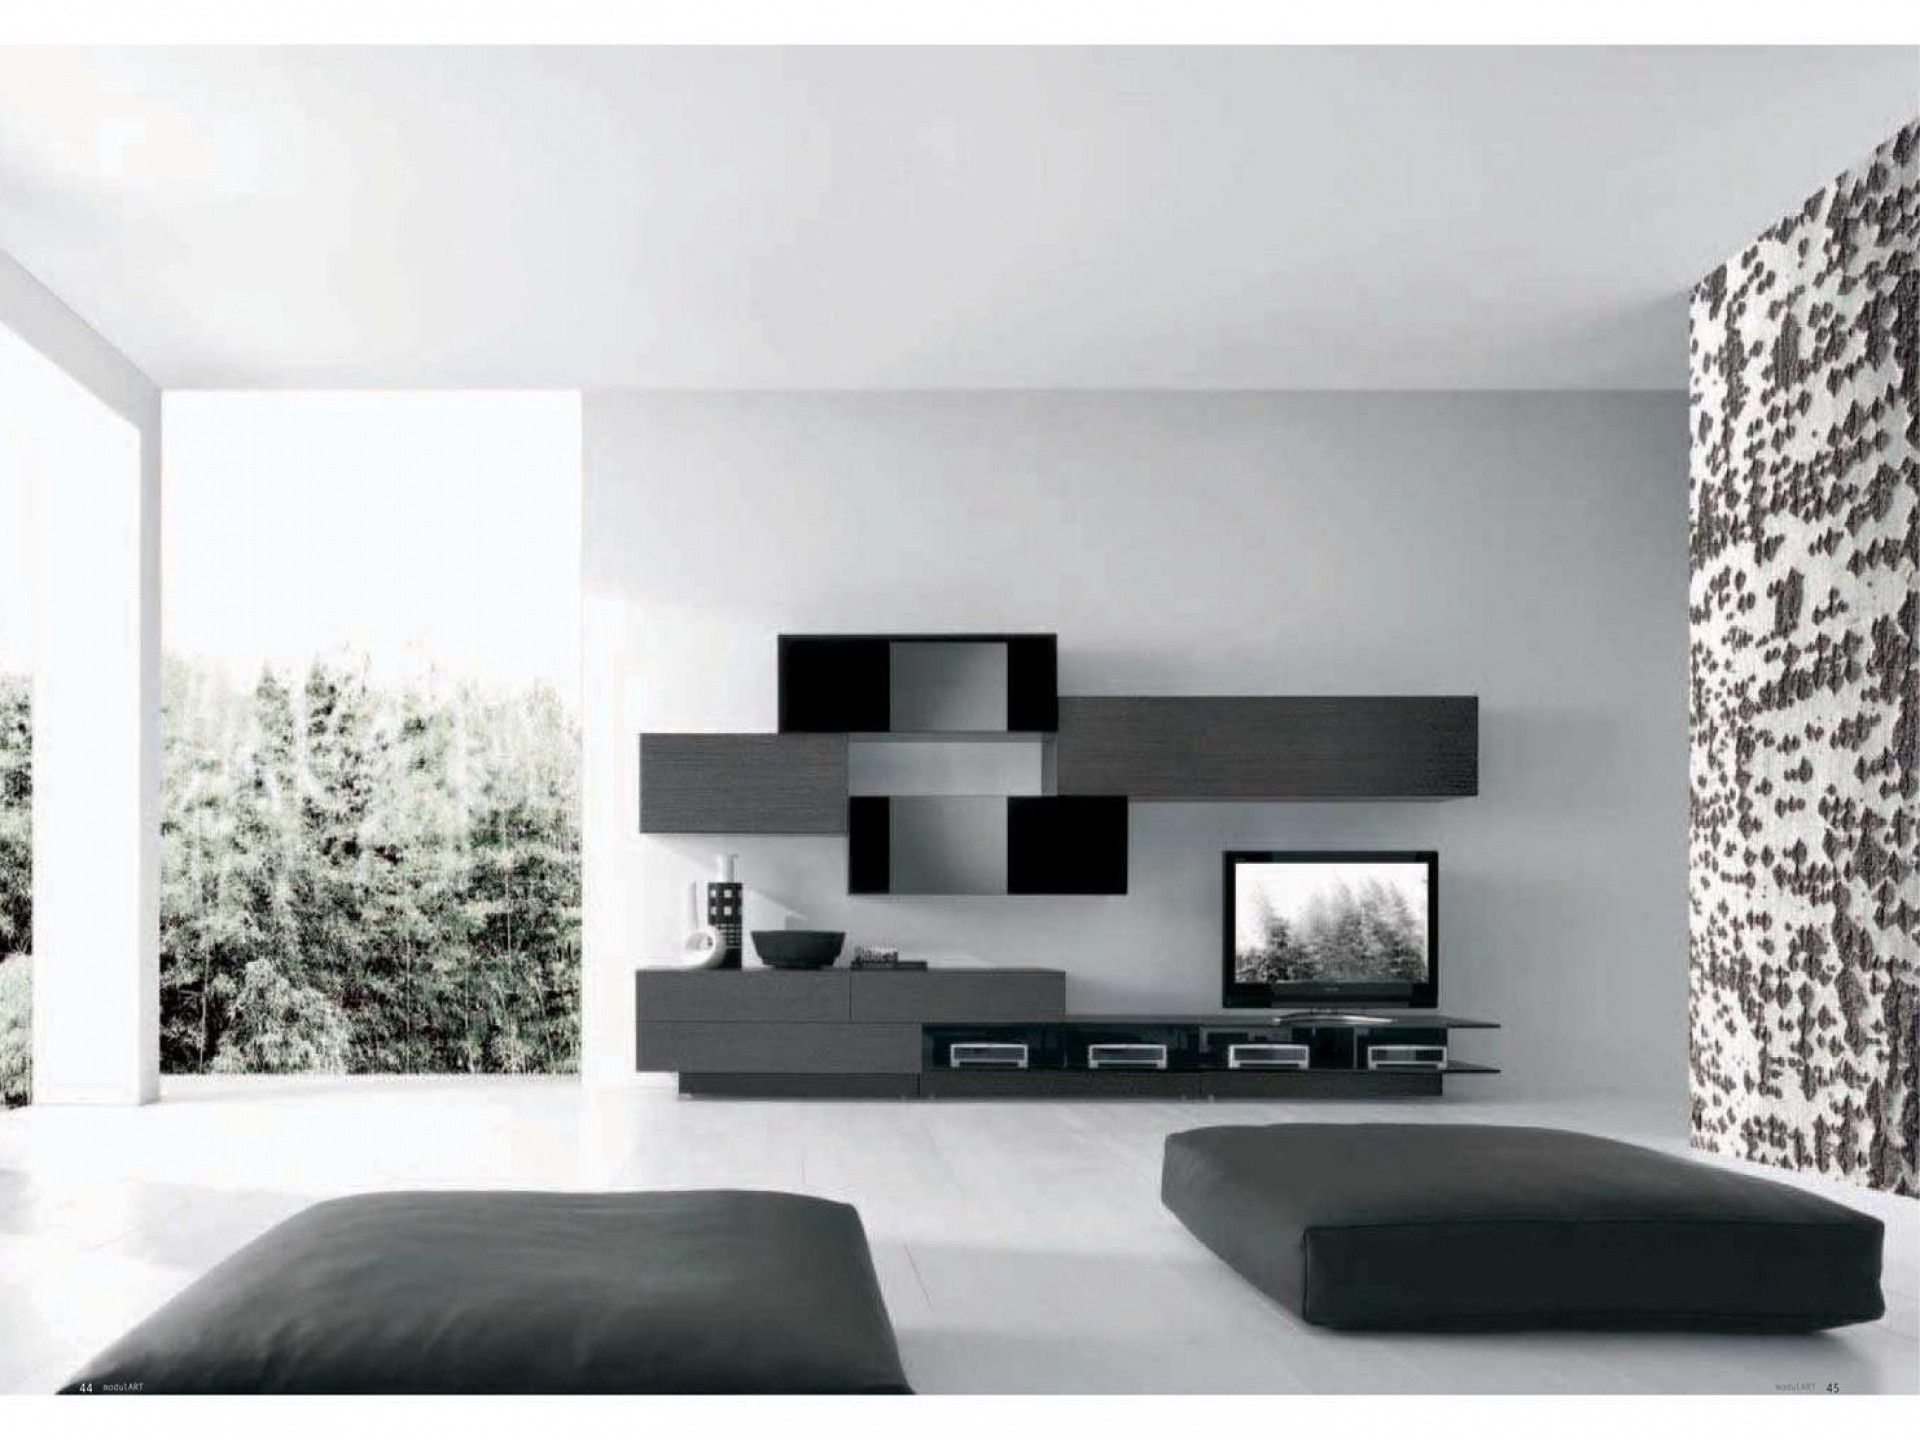 led tv wall design in bed room and hall glass cabinets for living